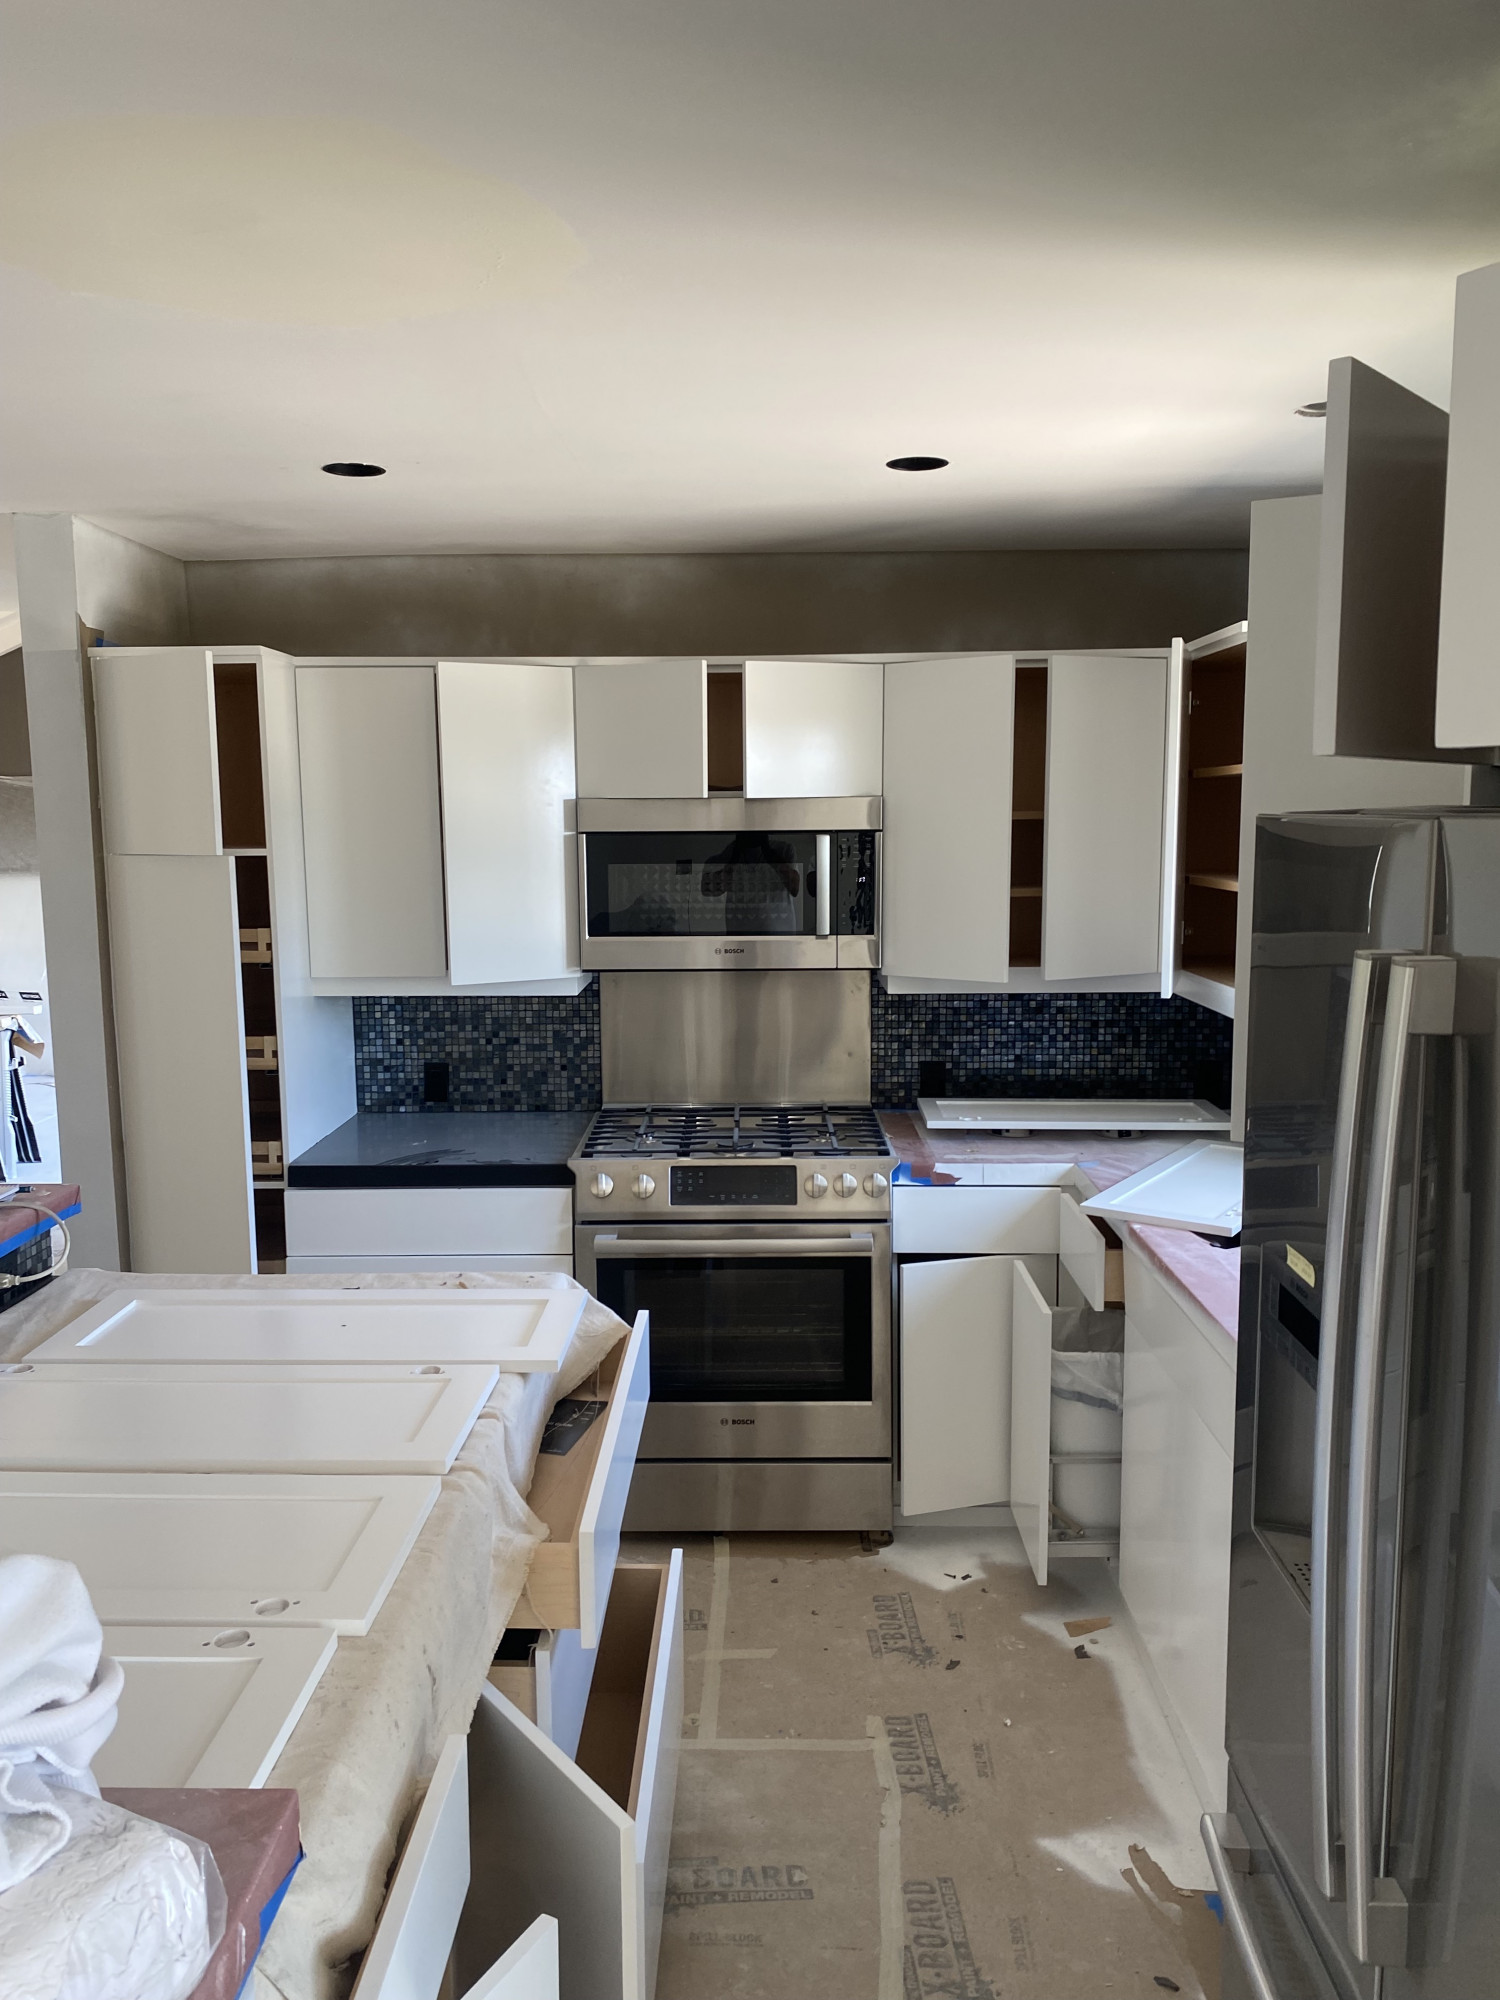 Painting my kitchen cabinets & tile - perfect budget friendly renovation option. We share our paint color options and more about our future plans